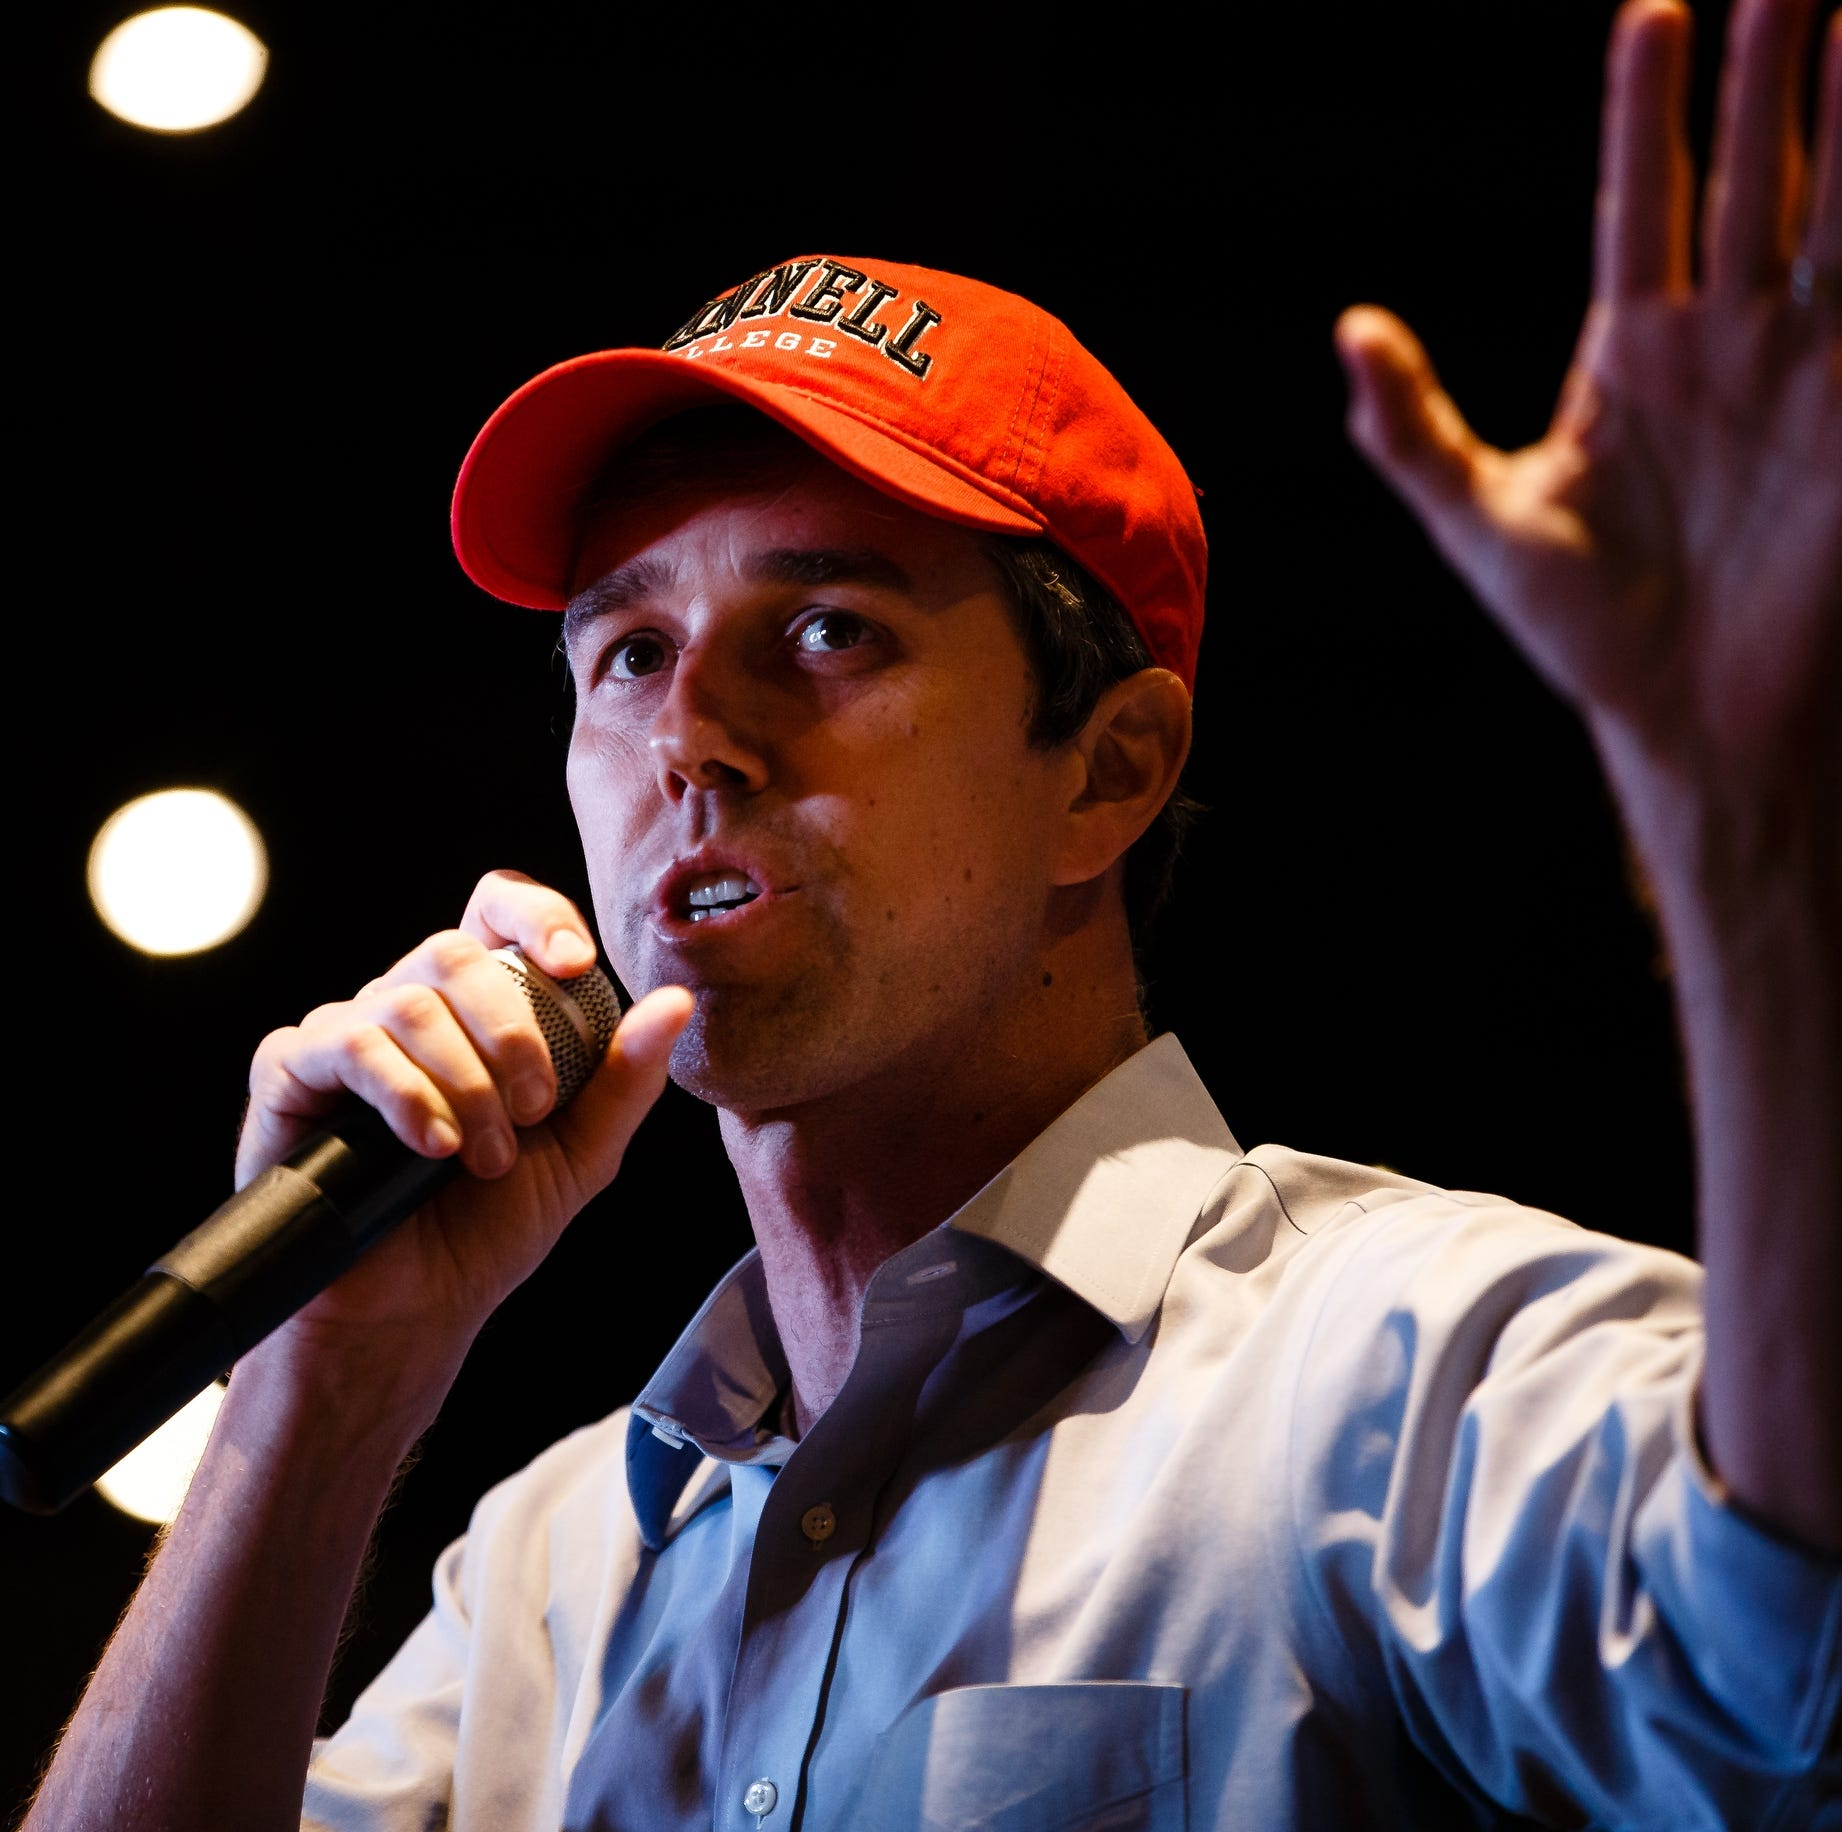 Beto O'Rourke hires 16-person Iowa caucus staff as he scales up organizing efforts